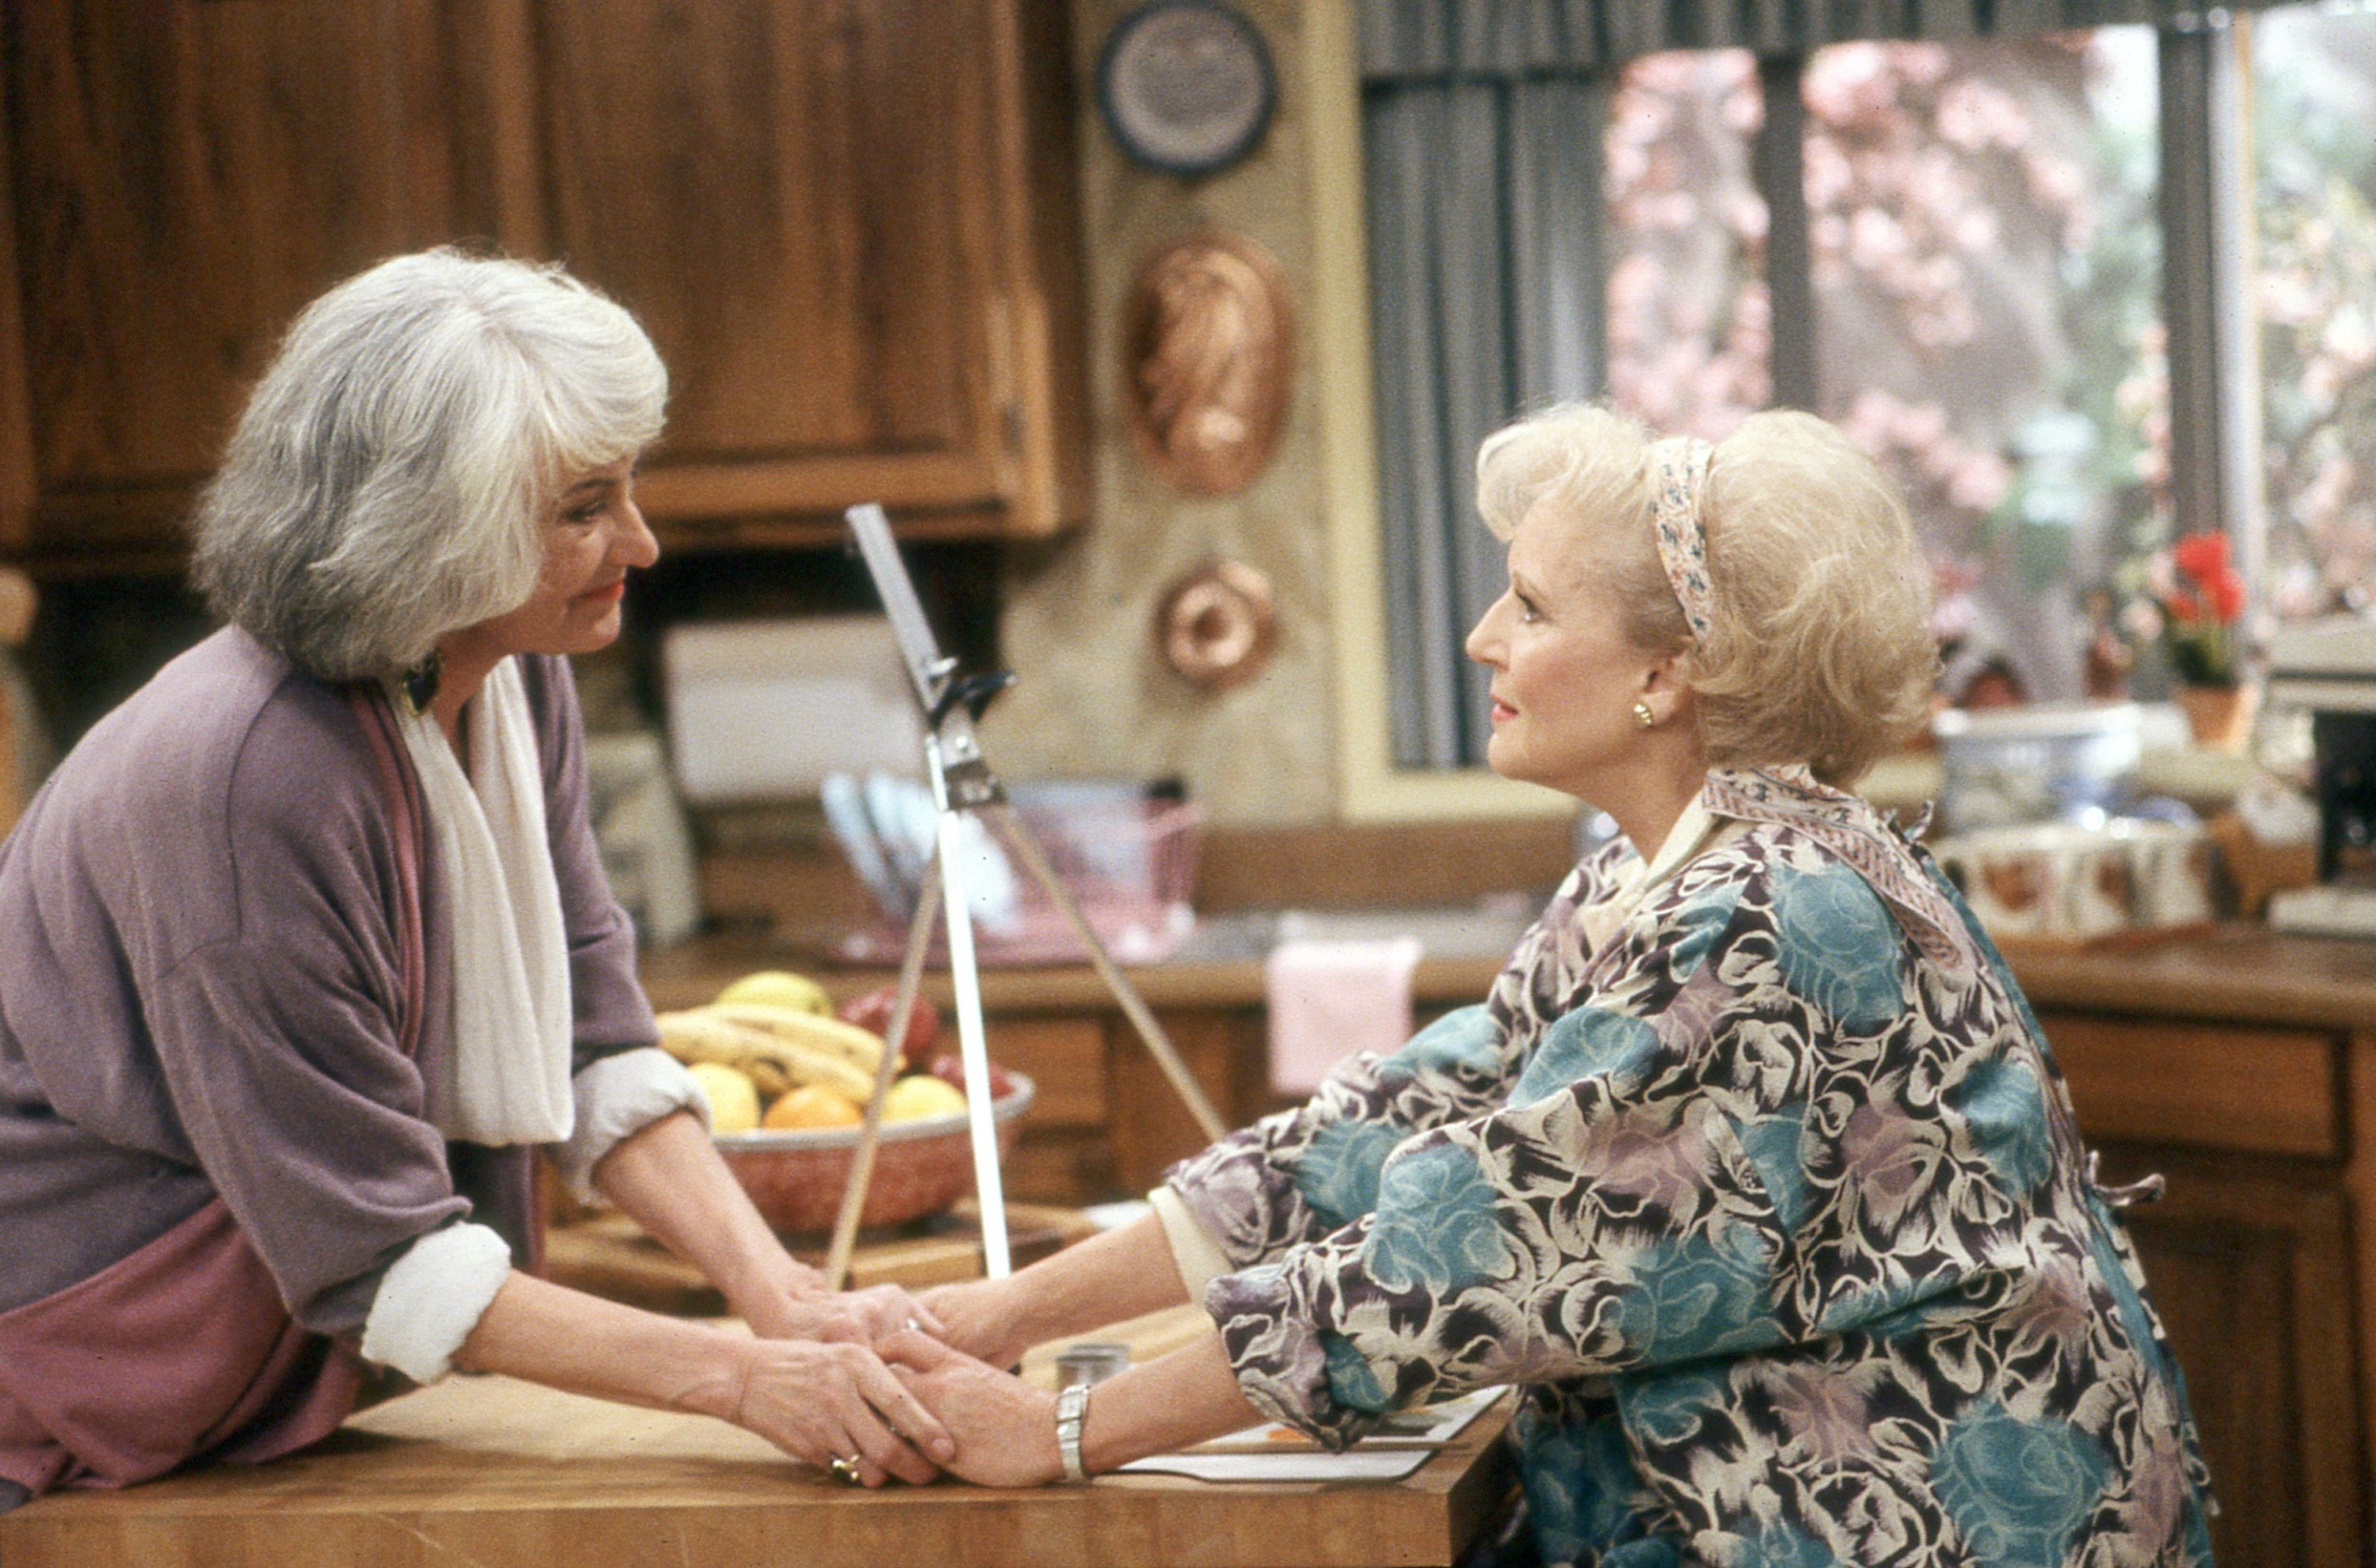 Dorothy and Rose holding hands affectionately in the kitchen